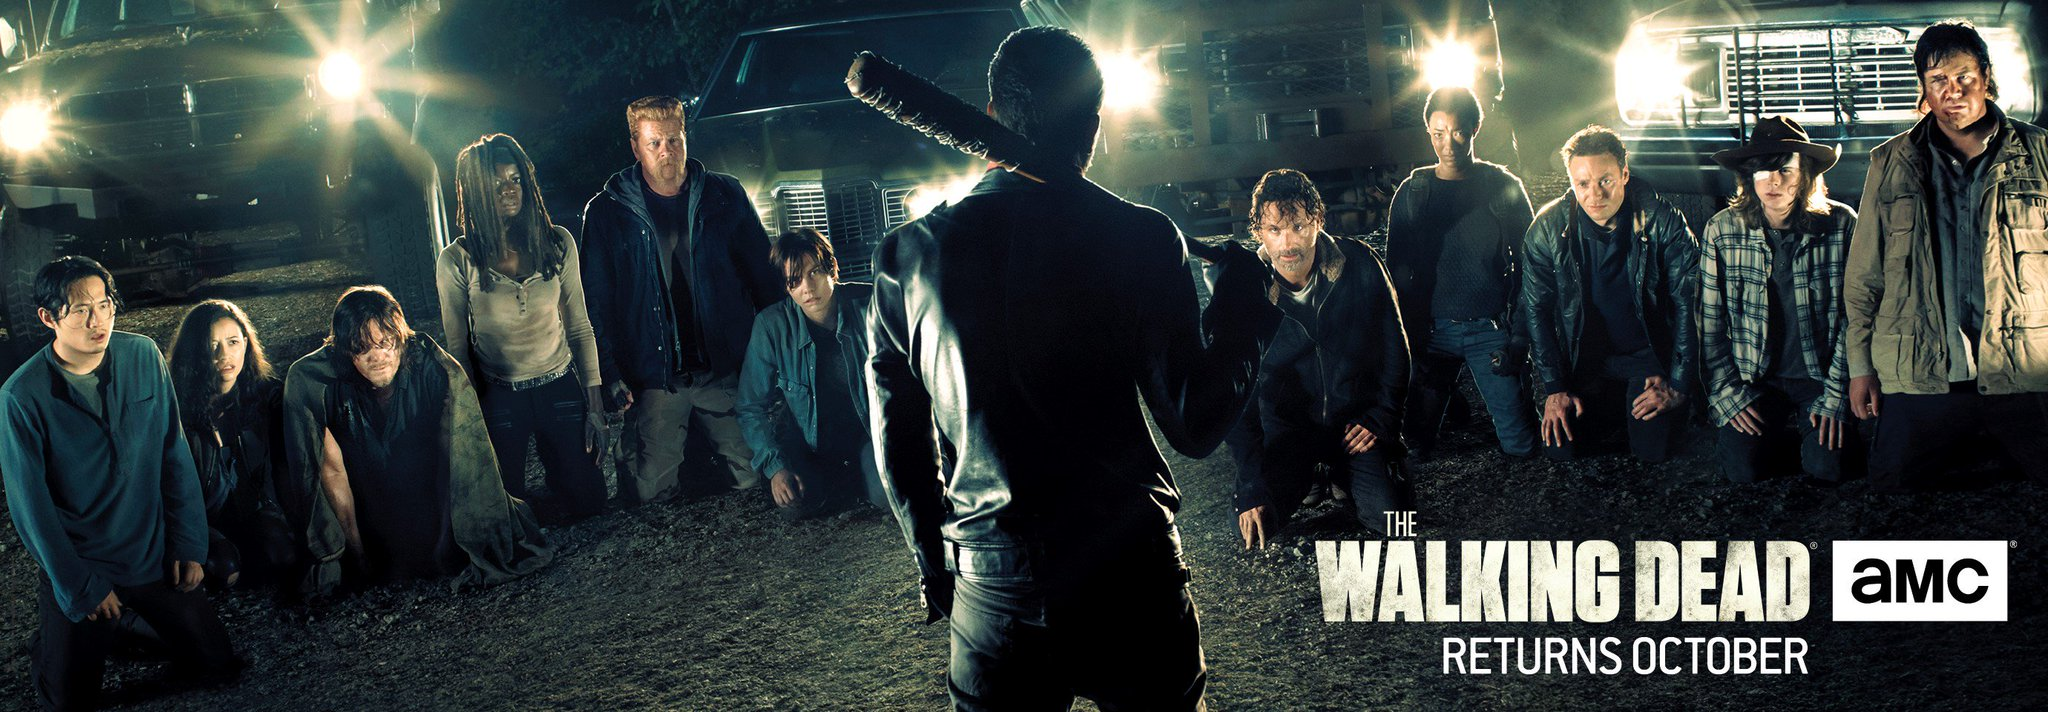 Bannière The Walking Dead Saison 7